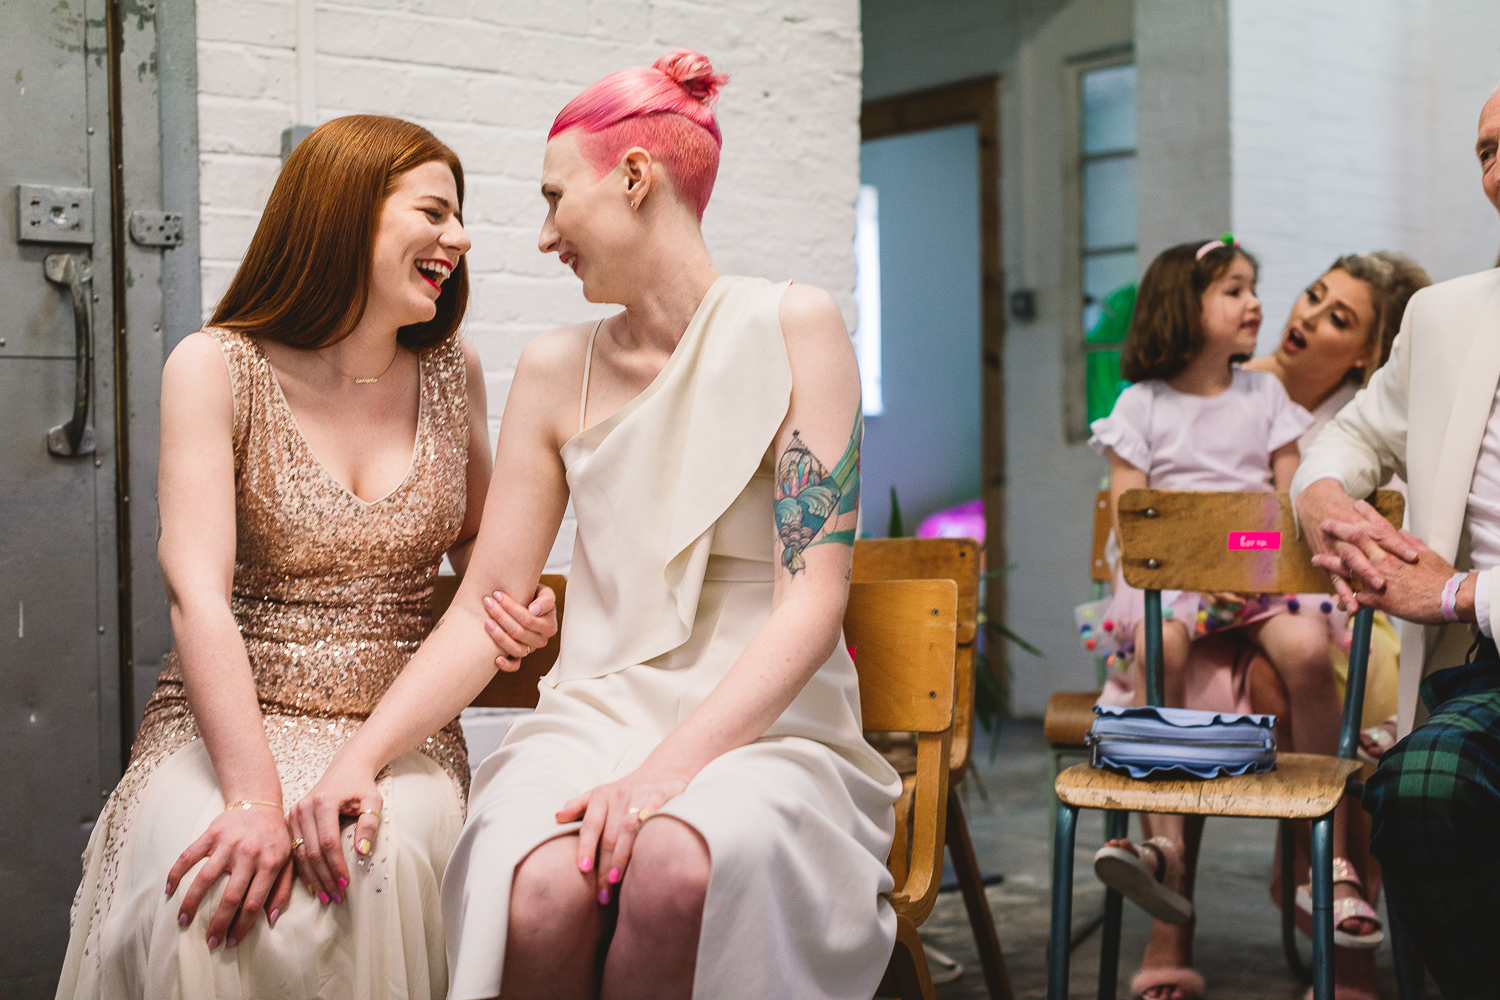 Photo in London of fun Same Sex wedding, two brides, one with pink hair and the other in gold sequin wedding dress are sitting together in a alternative wedding venue in Hackney. Arm in arm having fun laughing with each other.